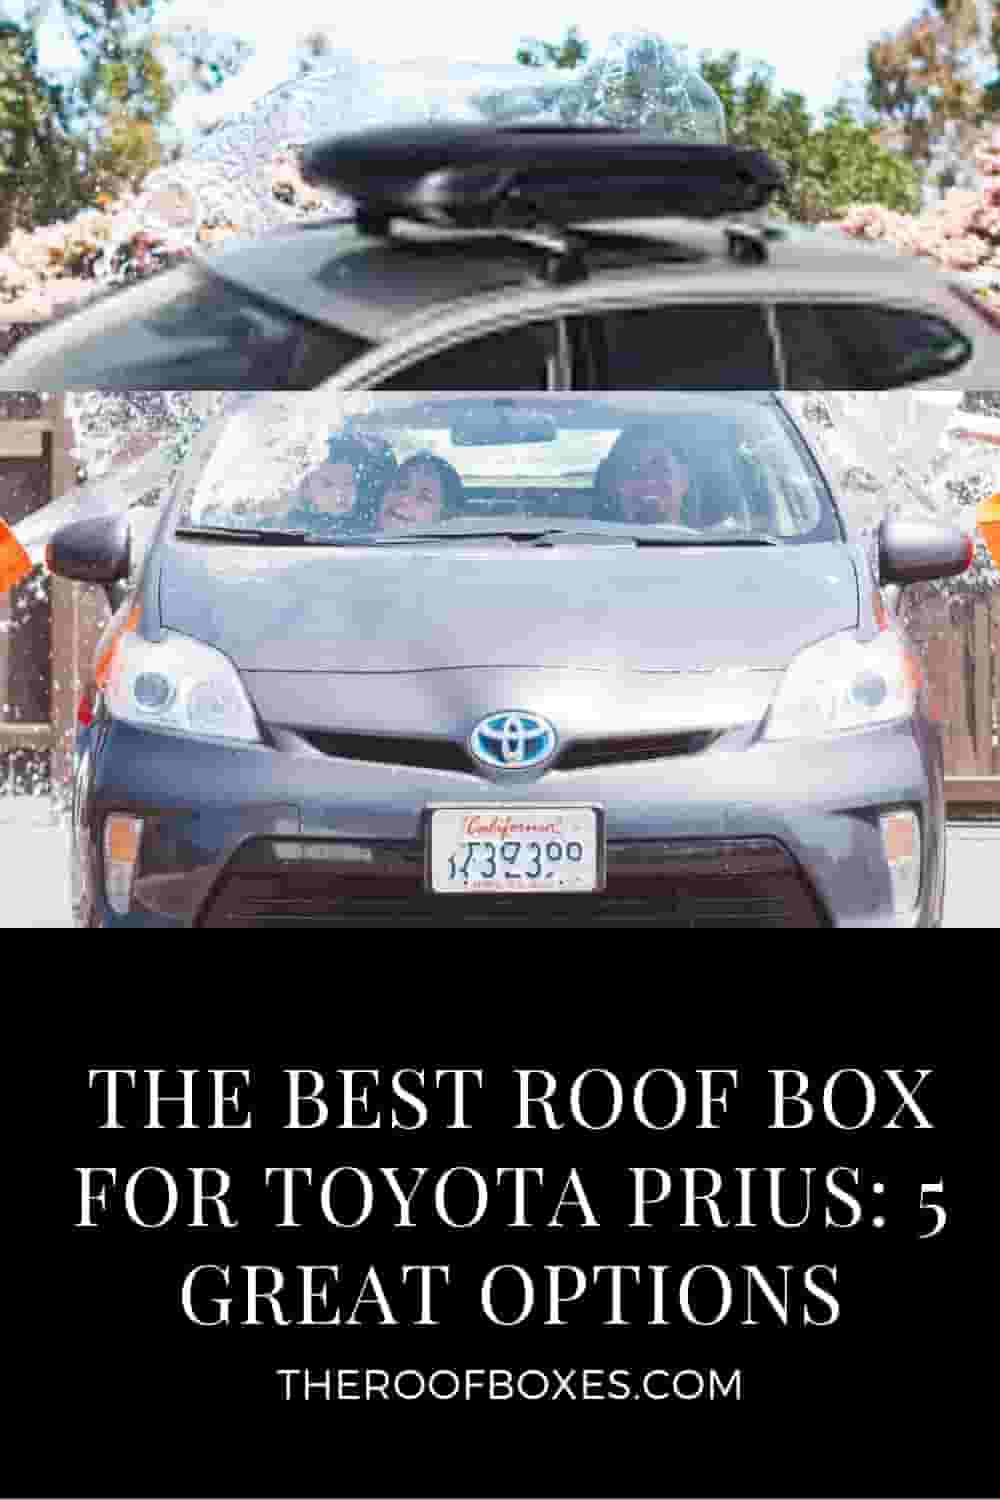 Roof Box for Toyota Prius – Reviews and Comparison